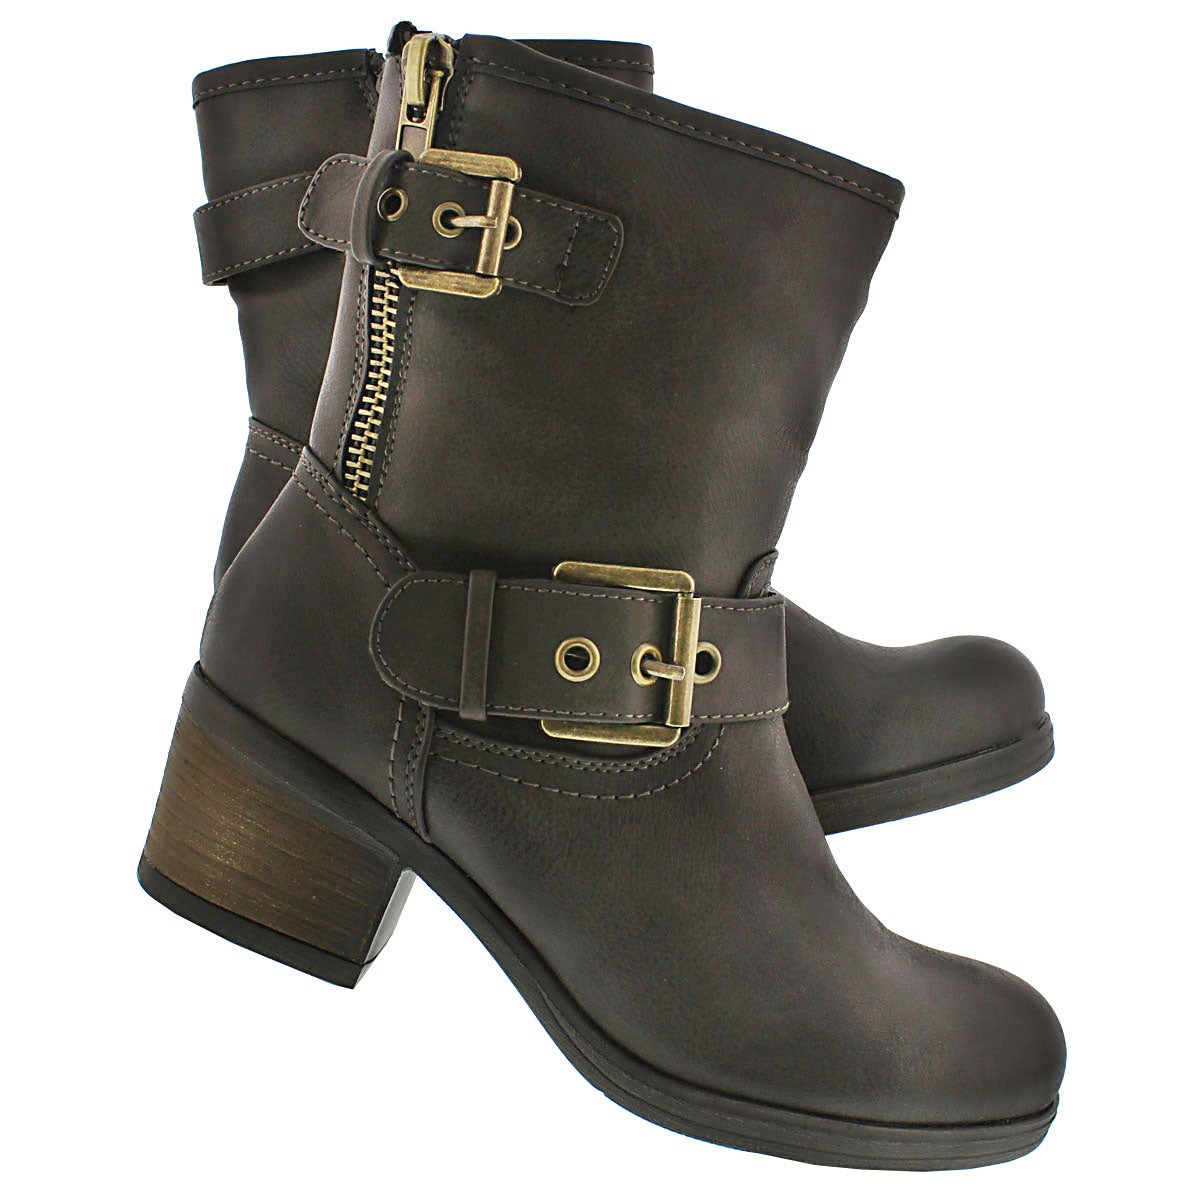 Lds Bobbi Jo dk taupe casual bootie